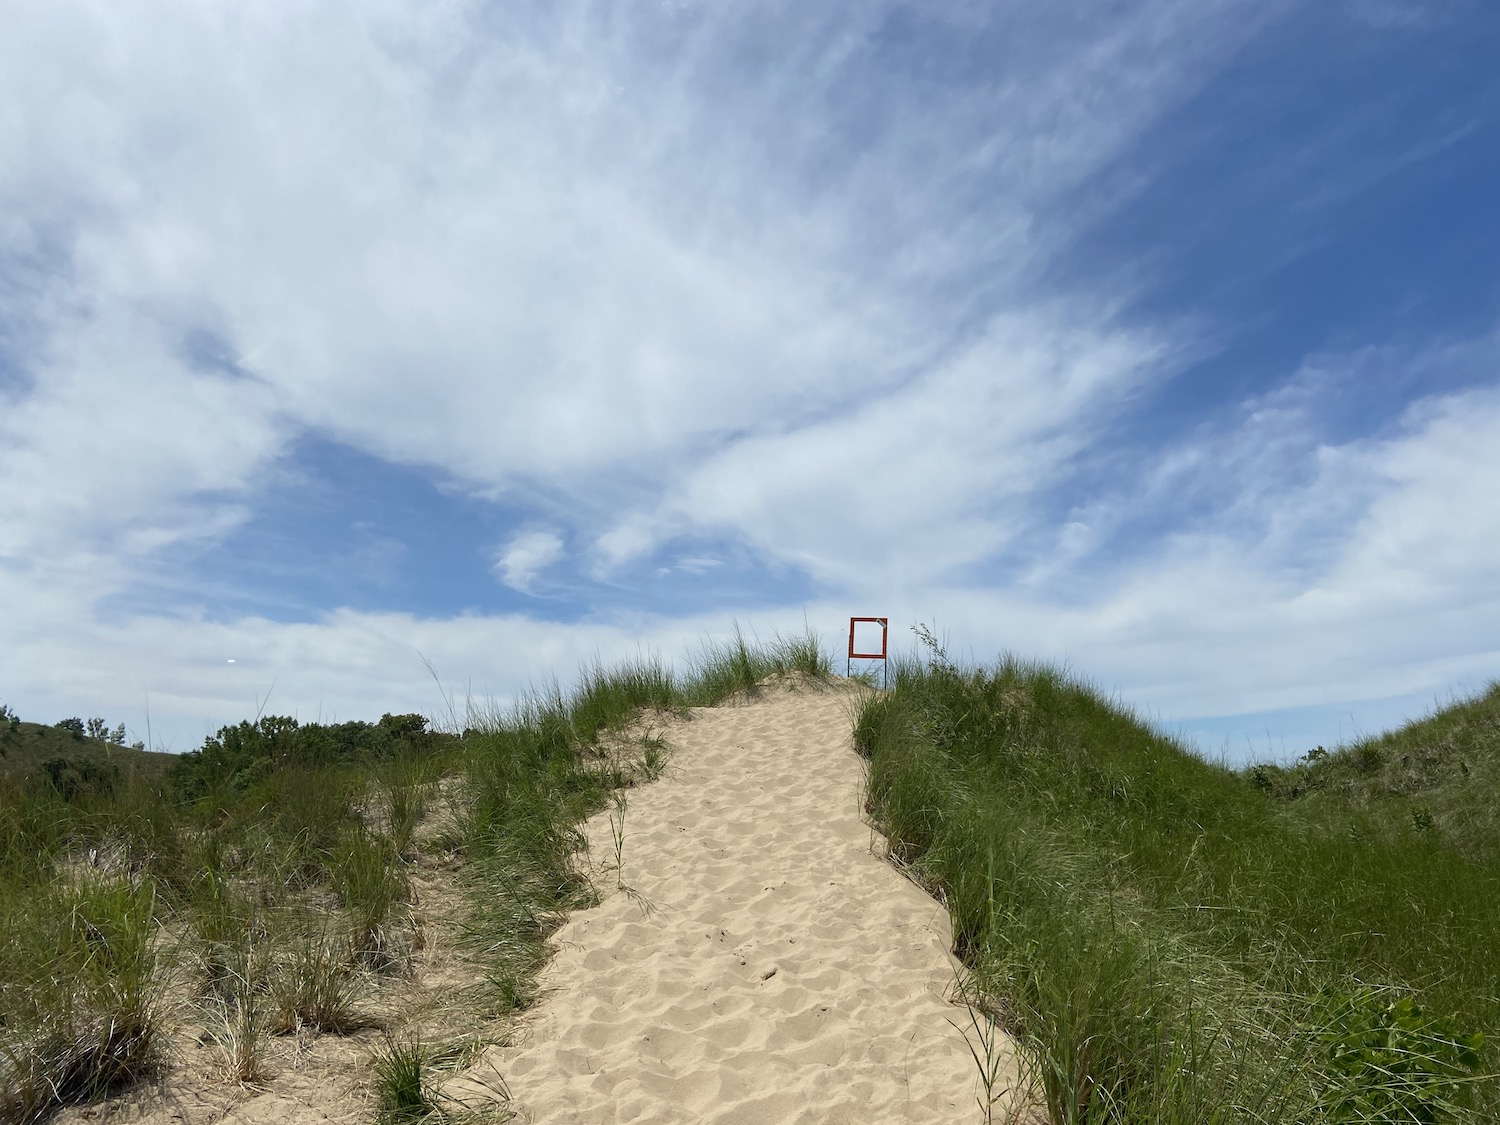 A sand dune in Michigan with an empty frame meant to hold a trail info sign on top of the dune.